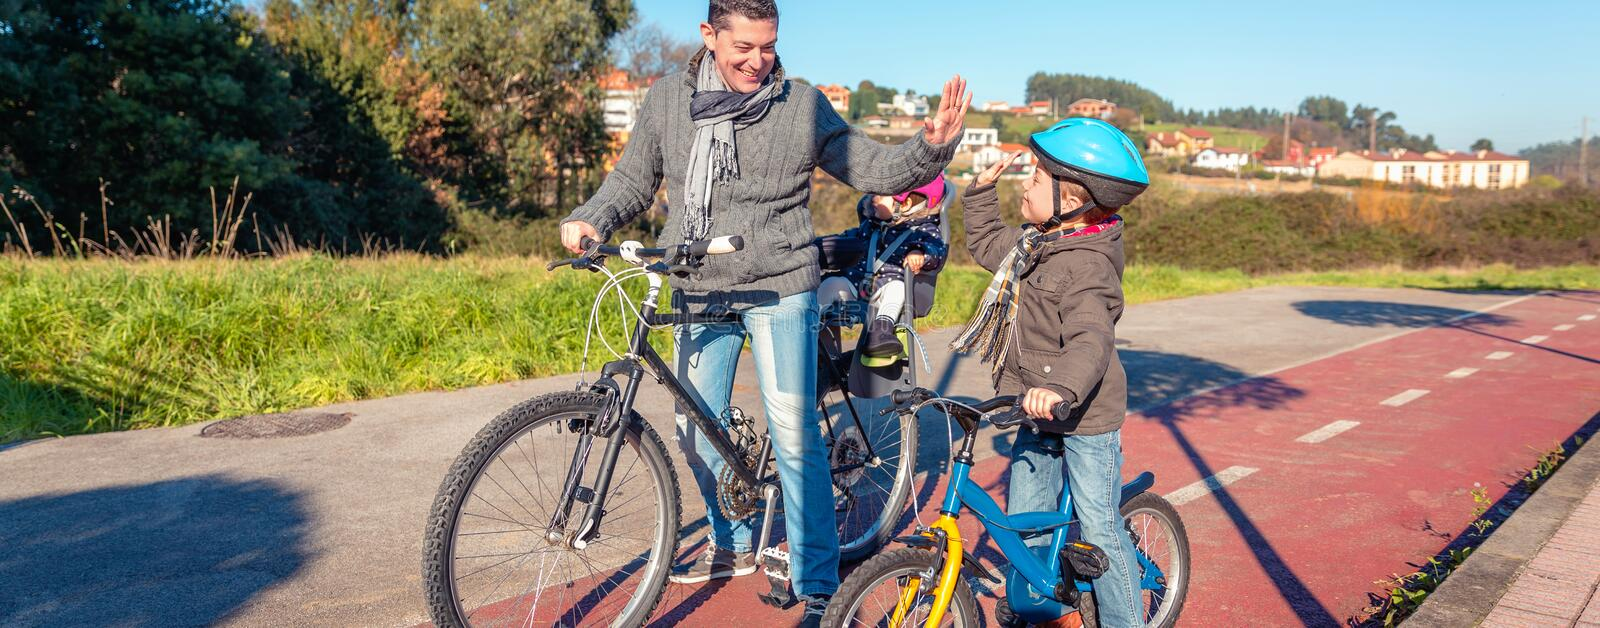 Father and son giving five by success riding bicycle royalty free stock images